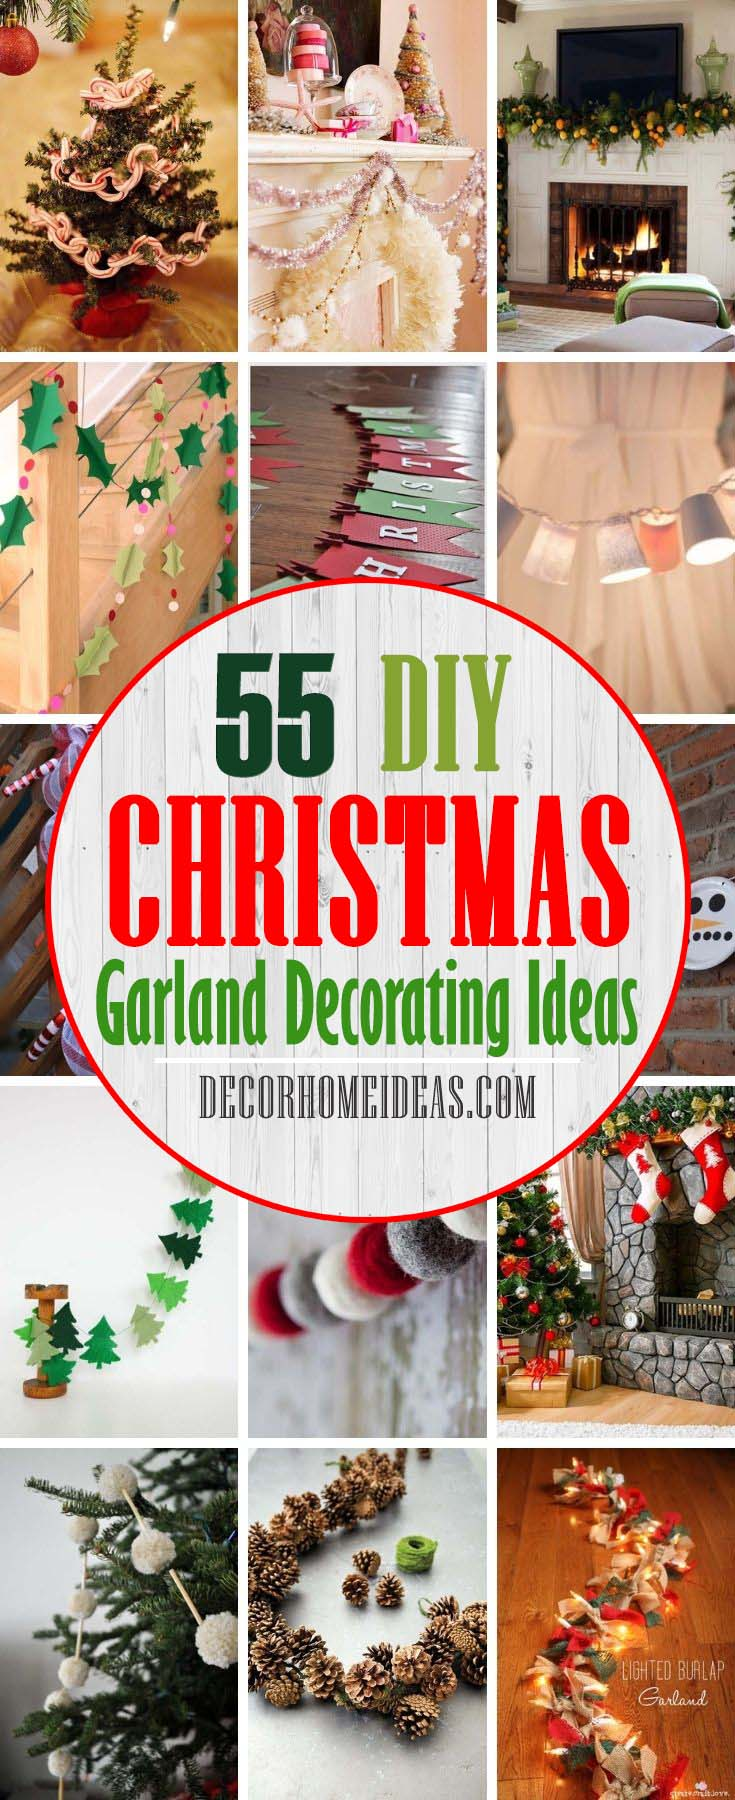 55 Best Diy Christmas Garland Decorating Ideas Wrap Your Home For The Holidays Decor Home Ideas